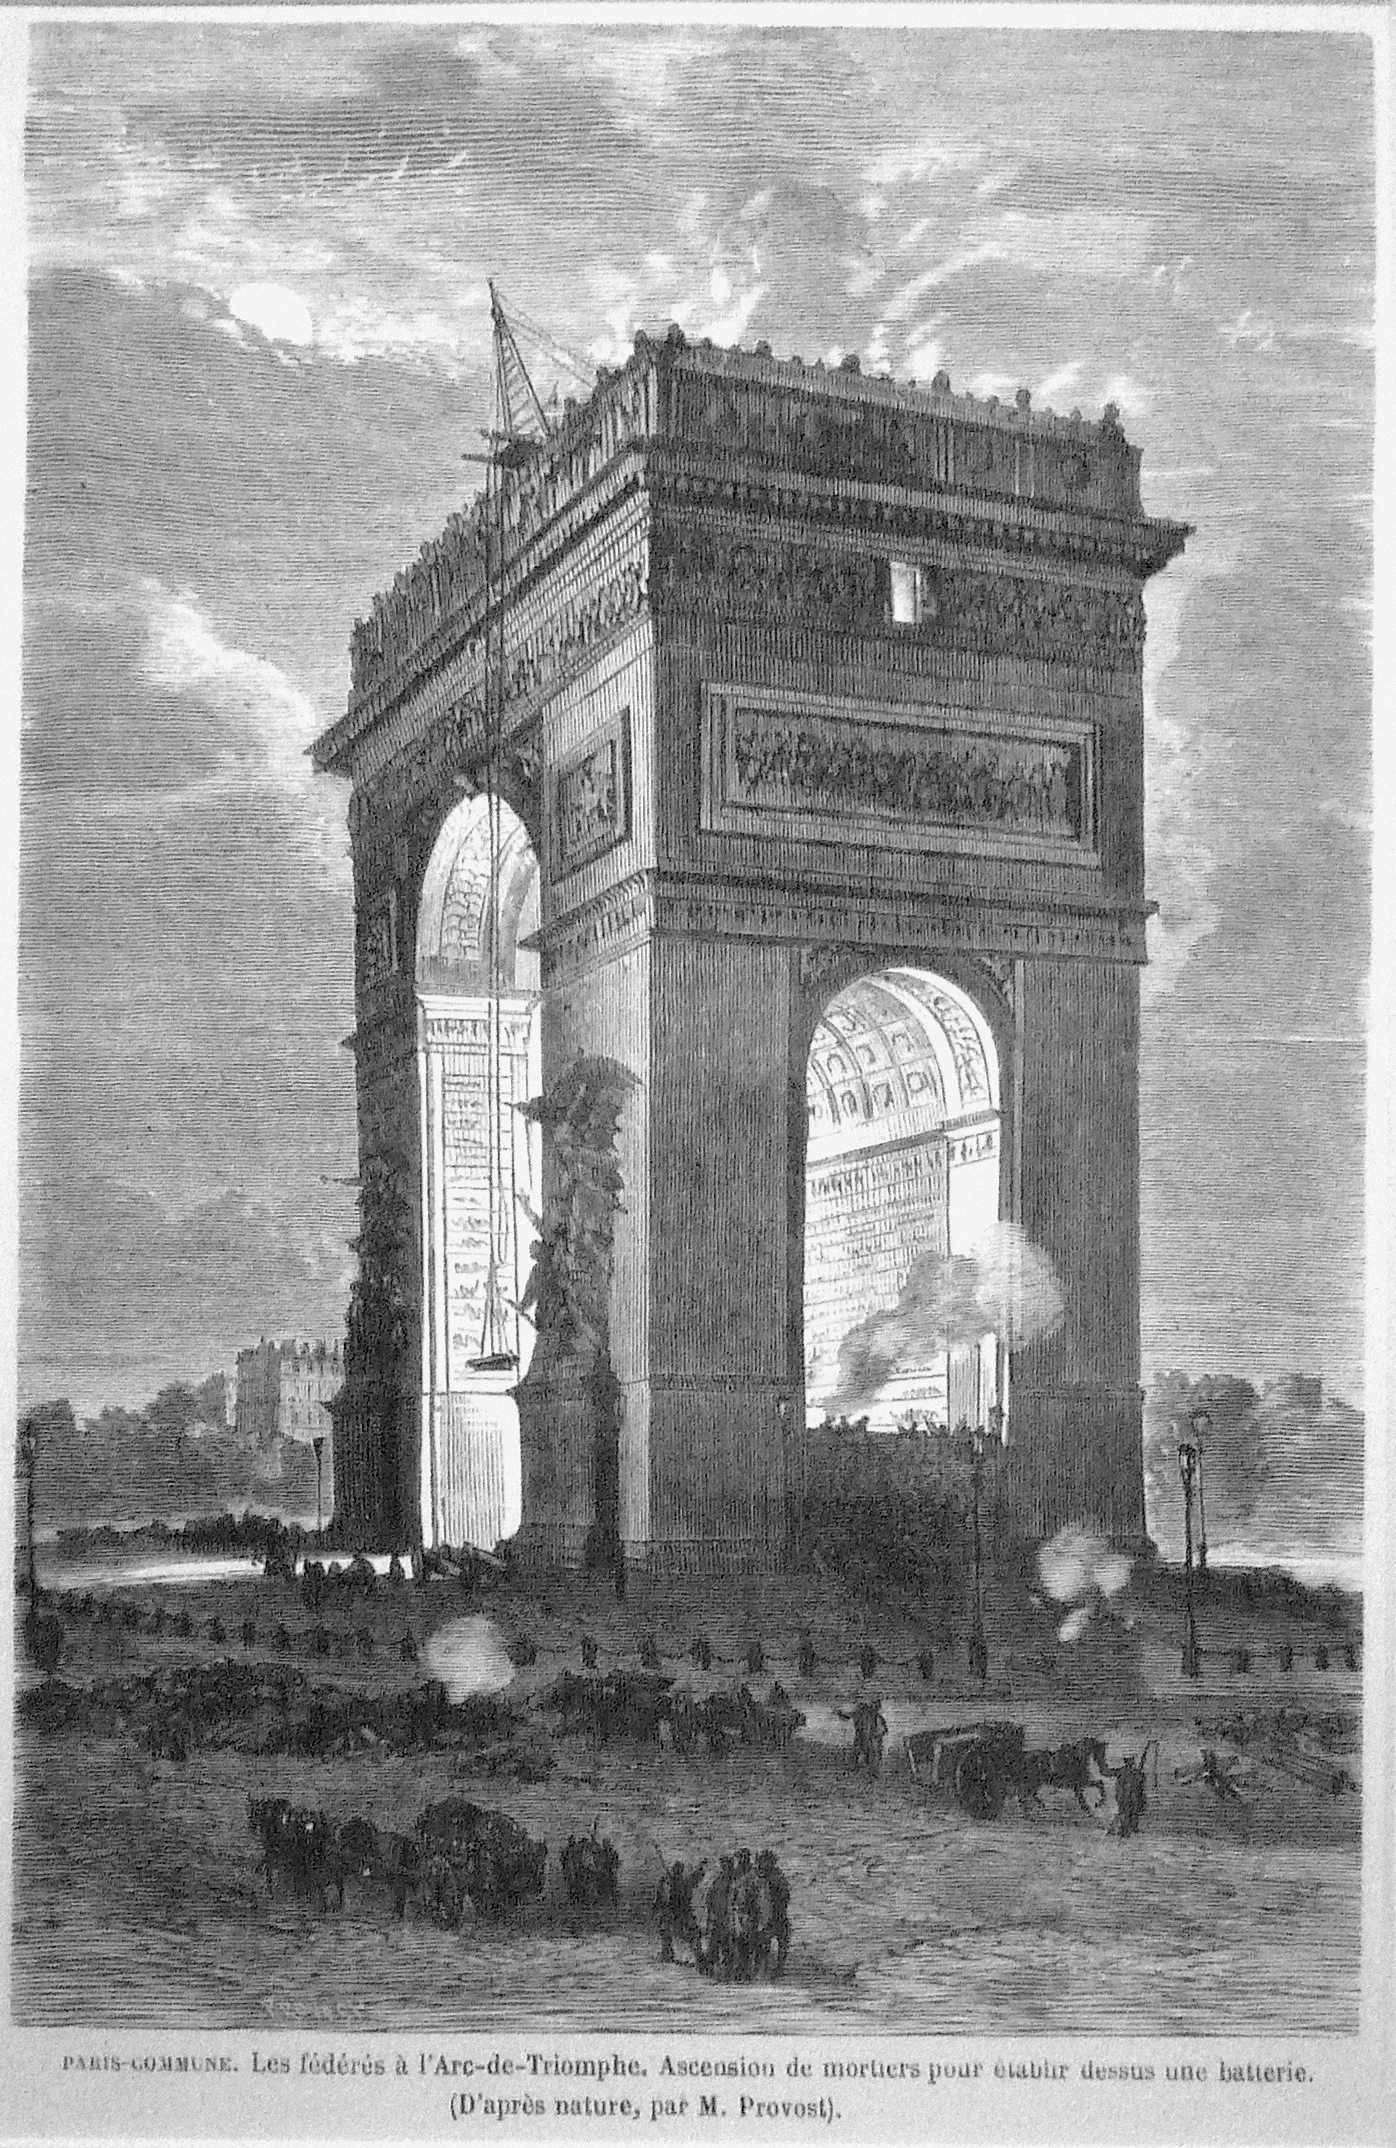 An image of the Arc de Triomphe during the Paris Commune, with cannons on top